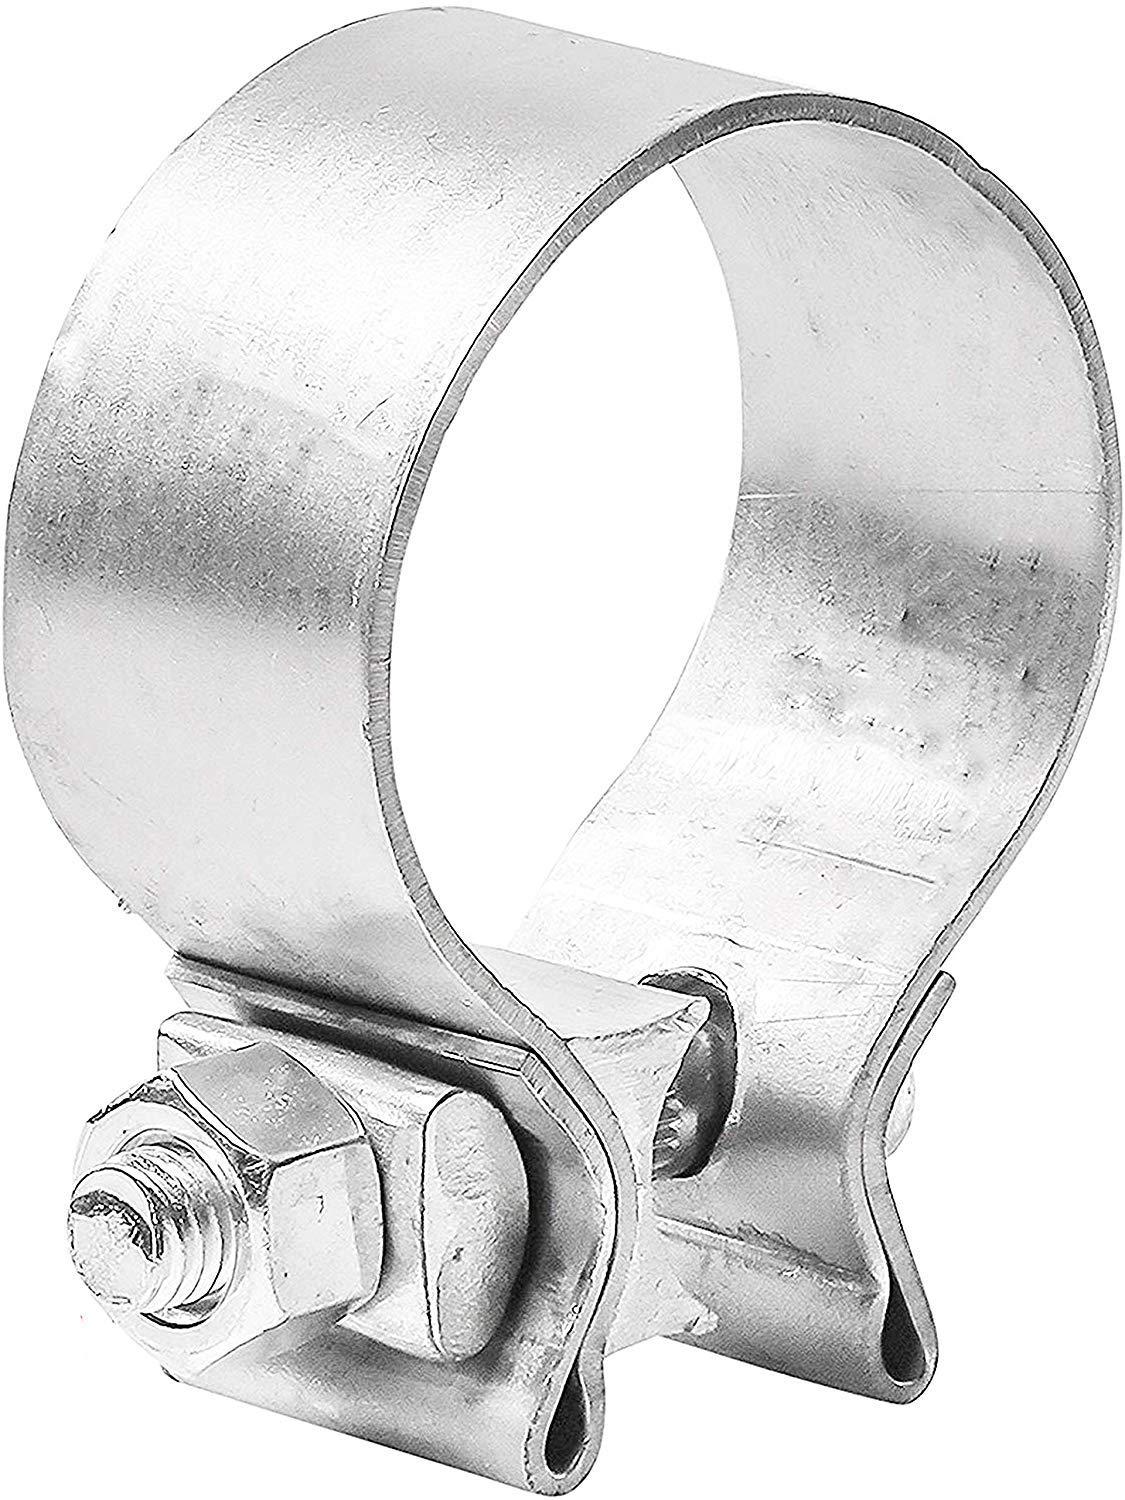 TOTALFLOW TF-200SS 409 Stainless Steel Single Bolt Exhaust Muffler Clamp Band 2'